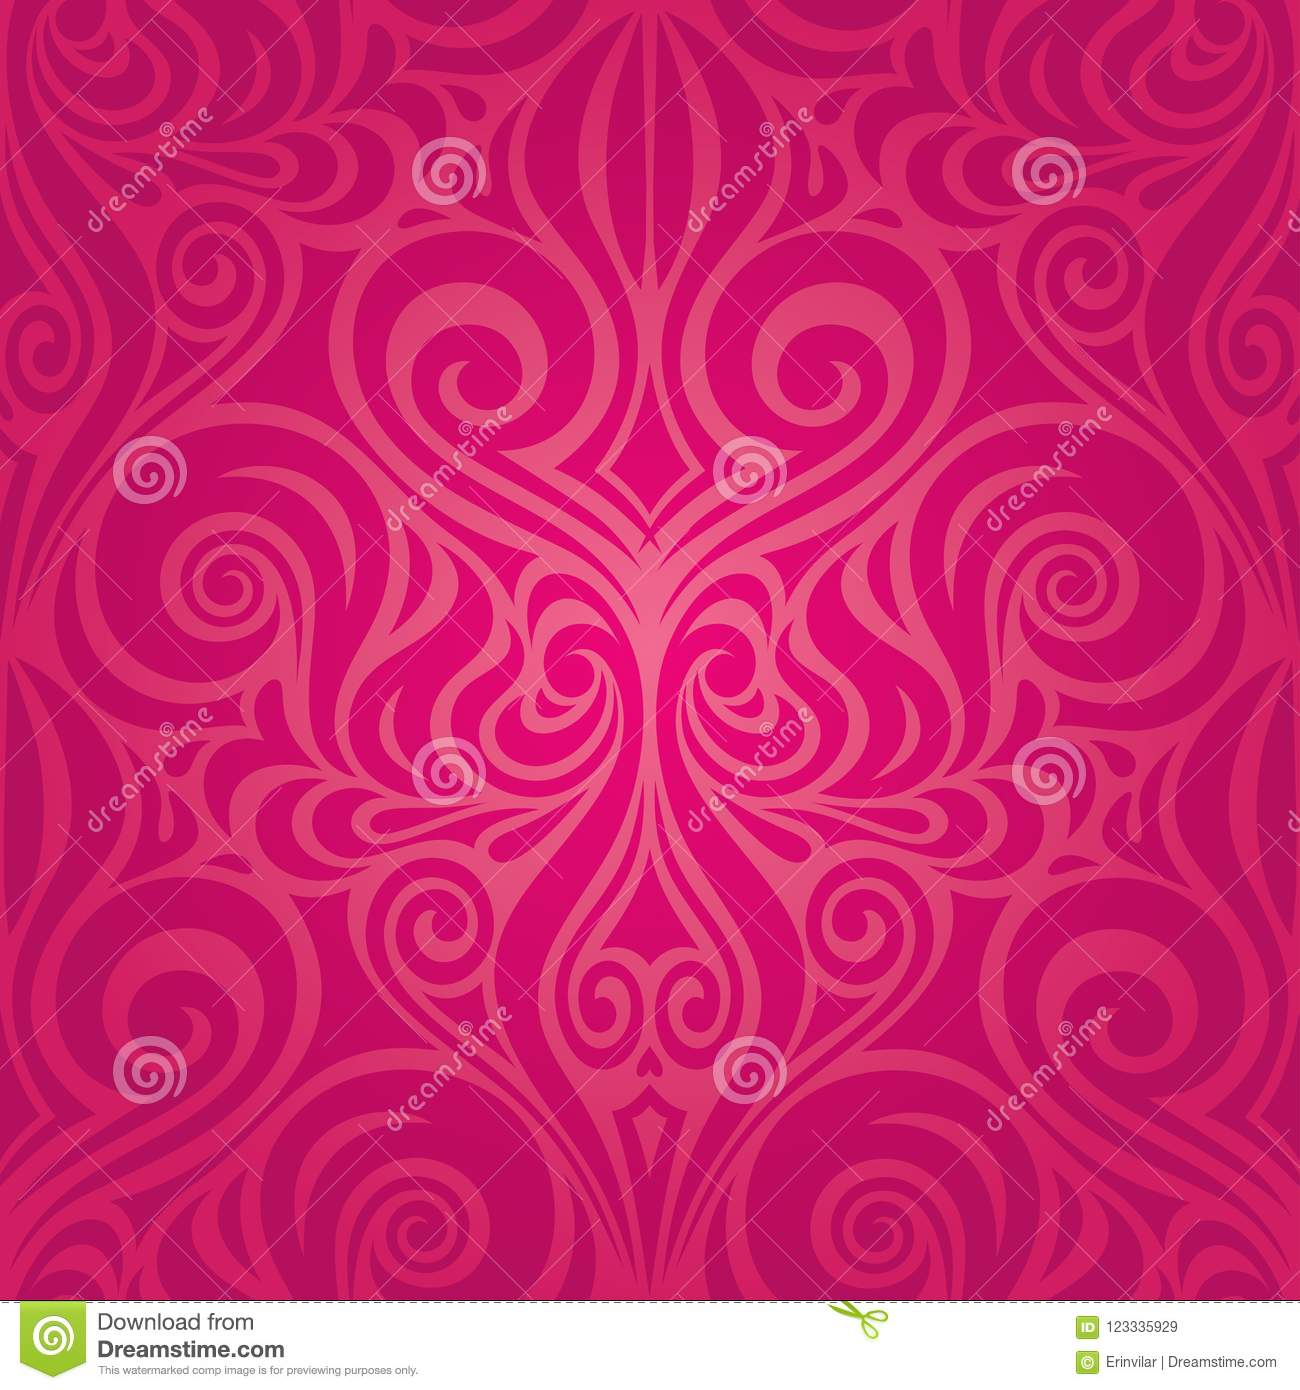 Red Flowers Gorgeous Decorative Floral Fashion Background